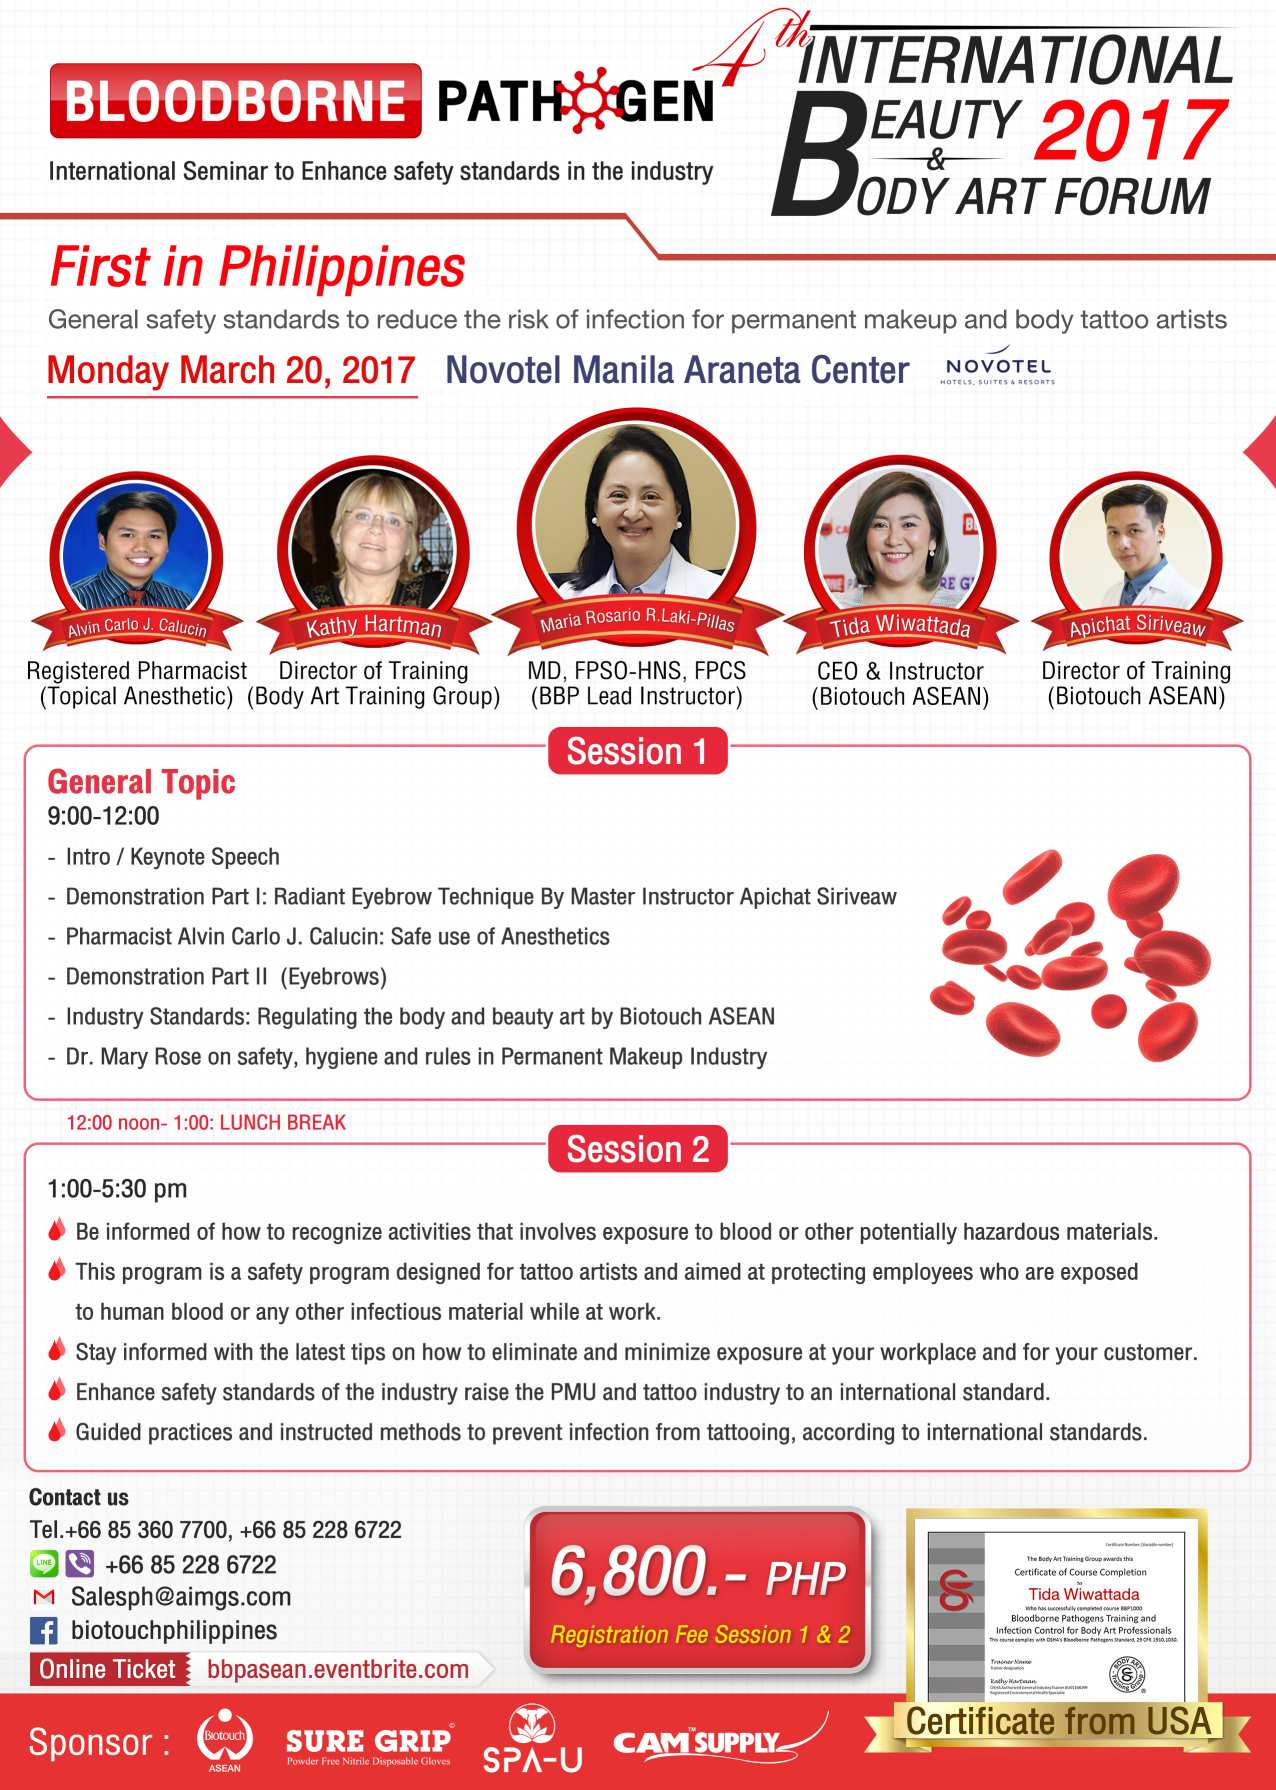 4th ibba forum 2017bloodborne pathogen class tickets mon mar 20 4th international beauty and body art forum 2017 manila philippines xflitez Gallery